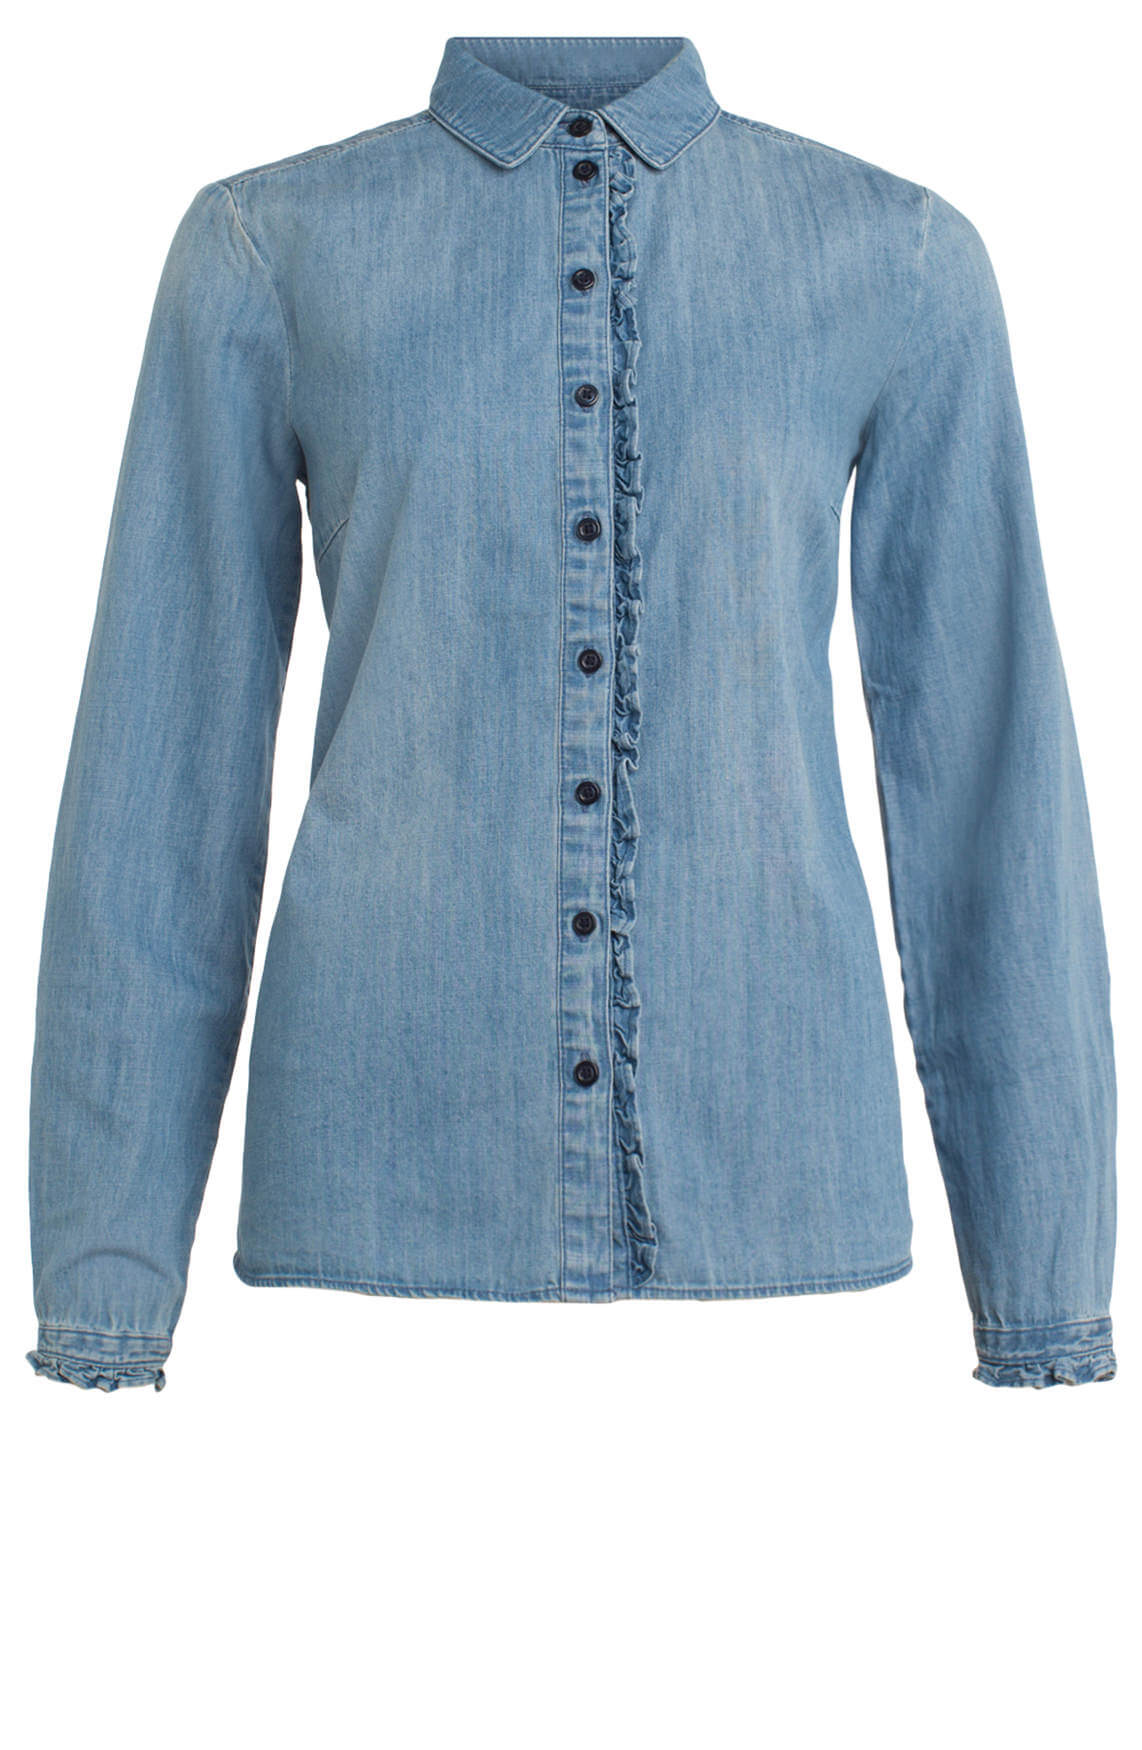 Marc O'Polo Dames Spijkerblouse met ruches Blauw